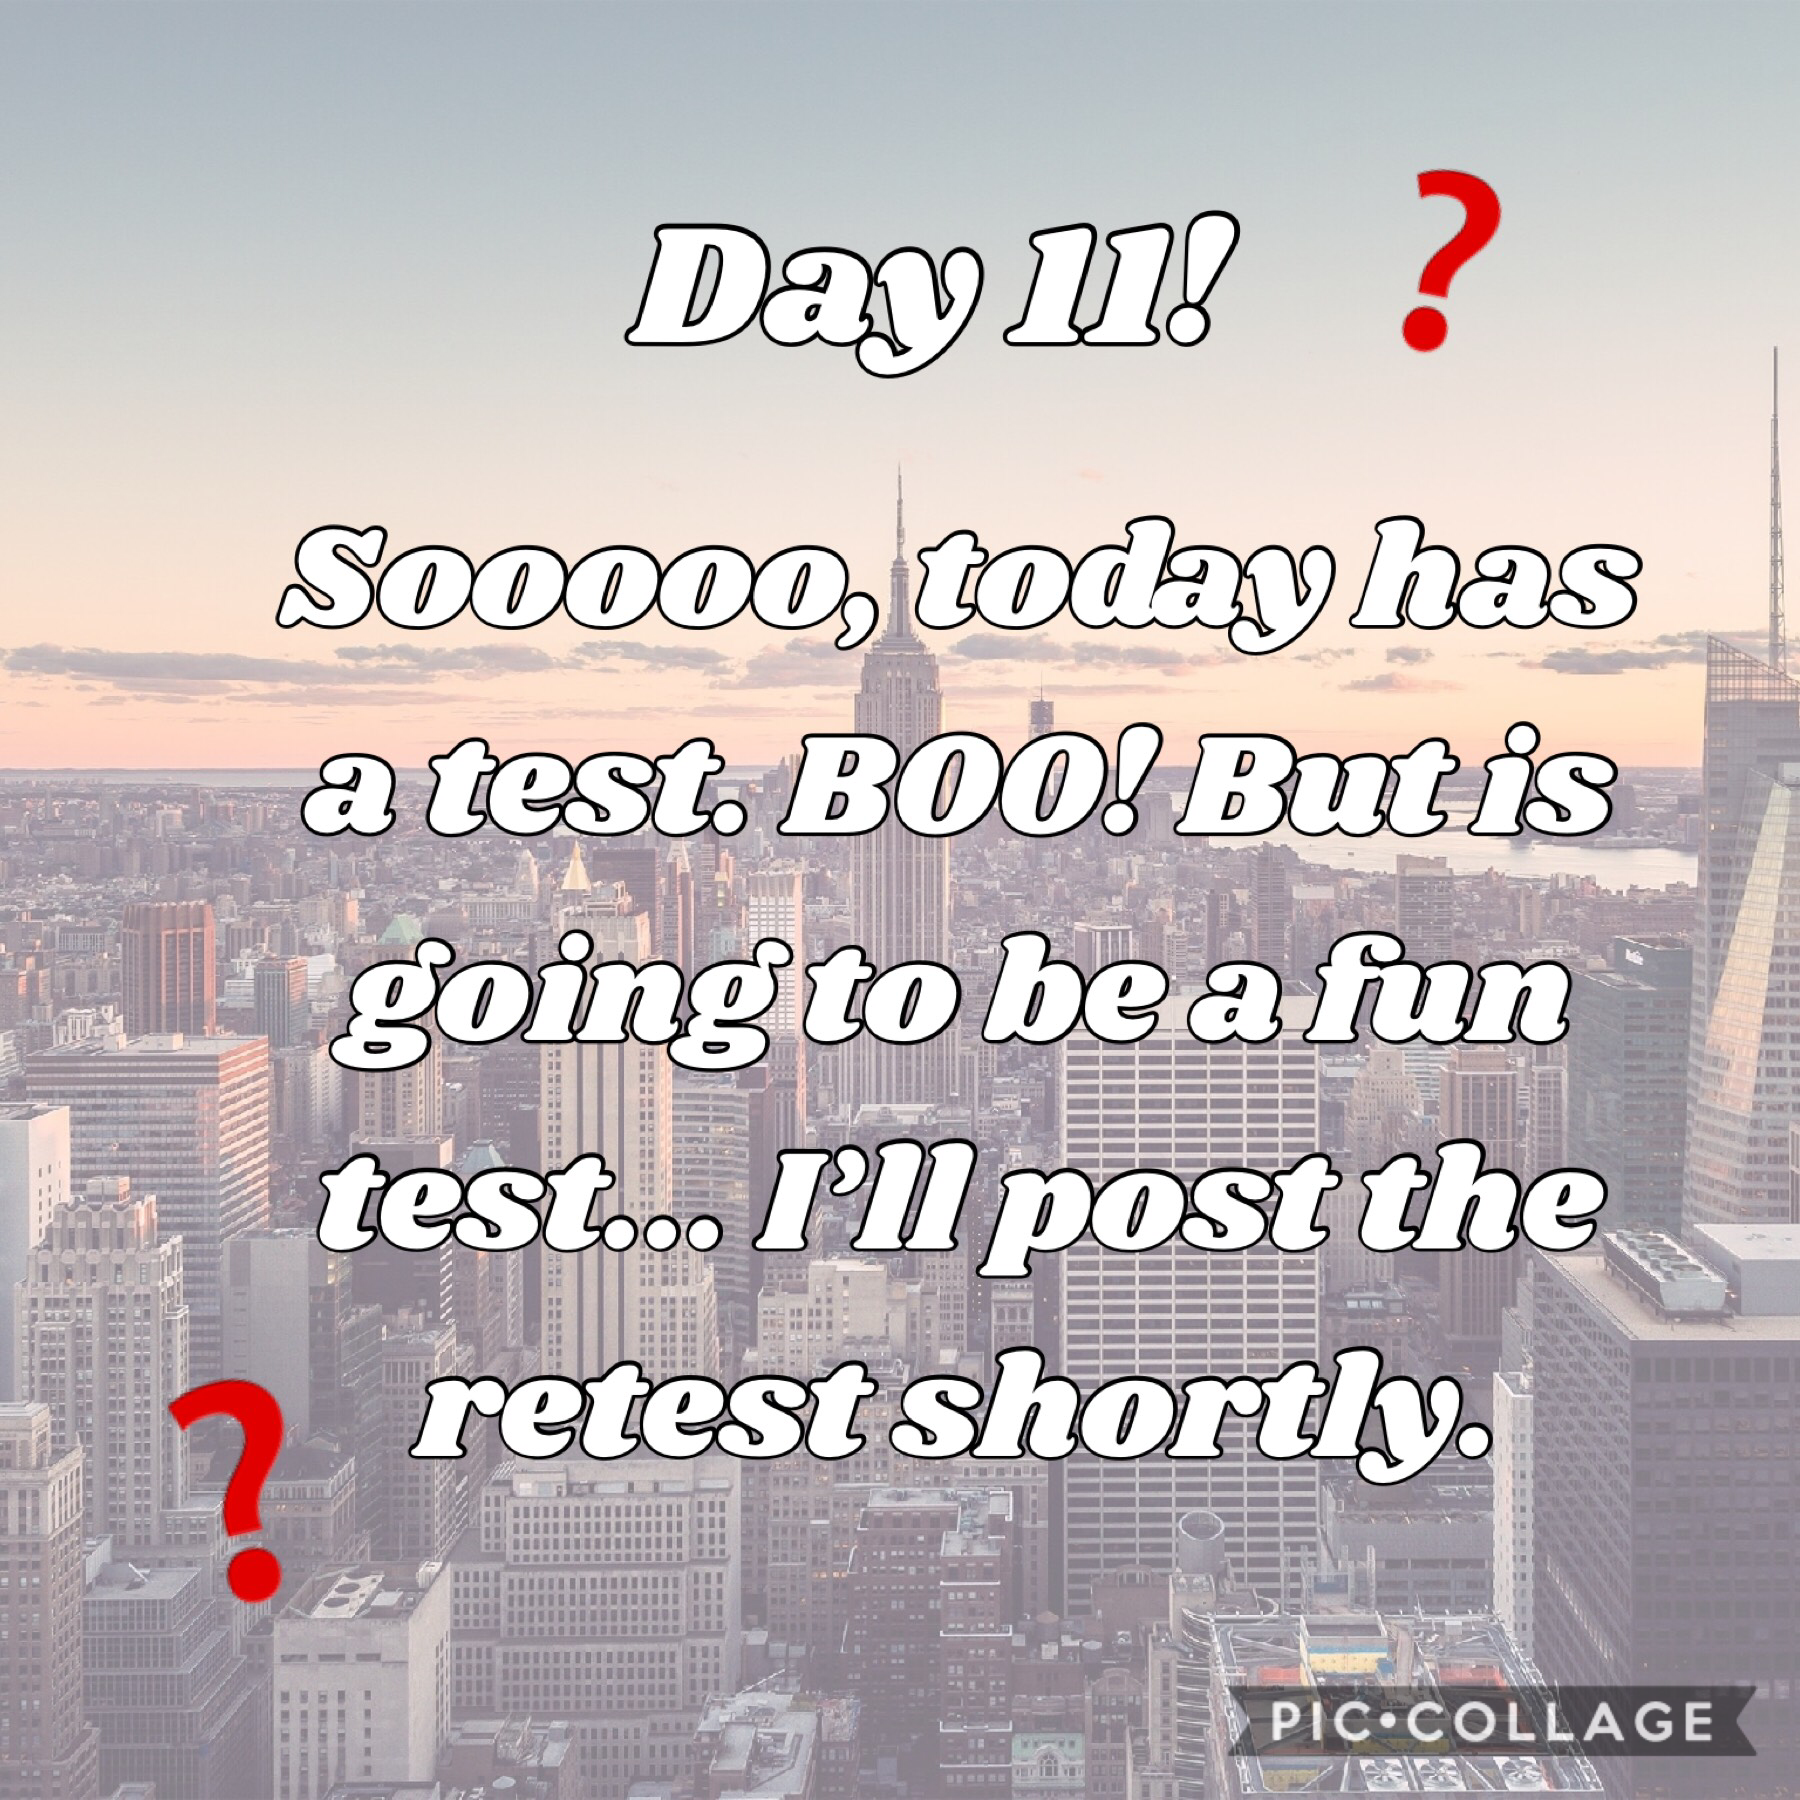 Tap!  Comment of this accounts first post what you think the test should be...